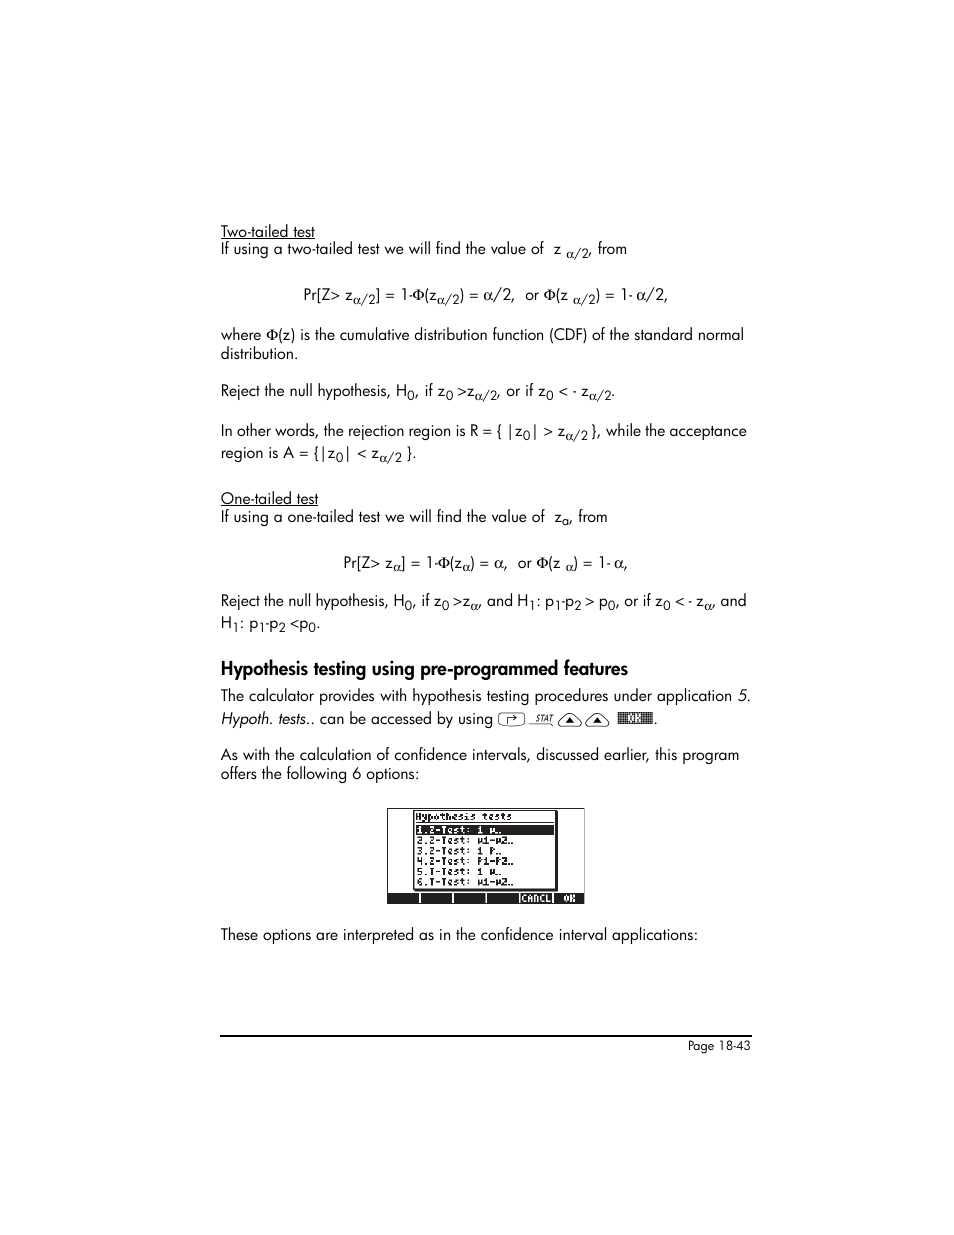 Hypothesis testing using pre-programmed features | HP 50g Graphing  Calculator User Manual | Page